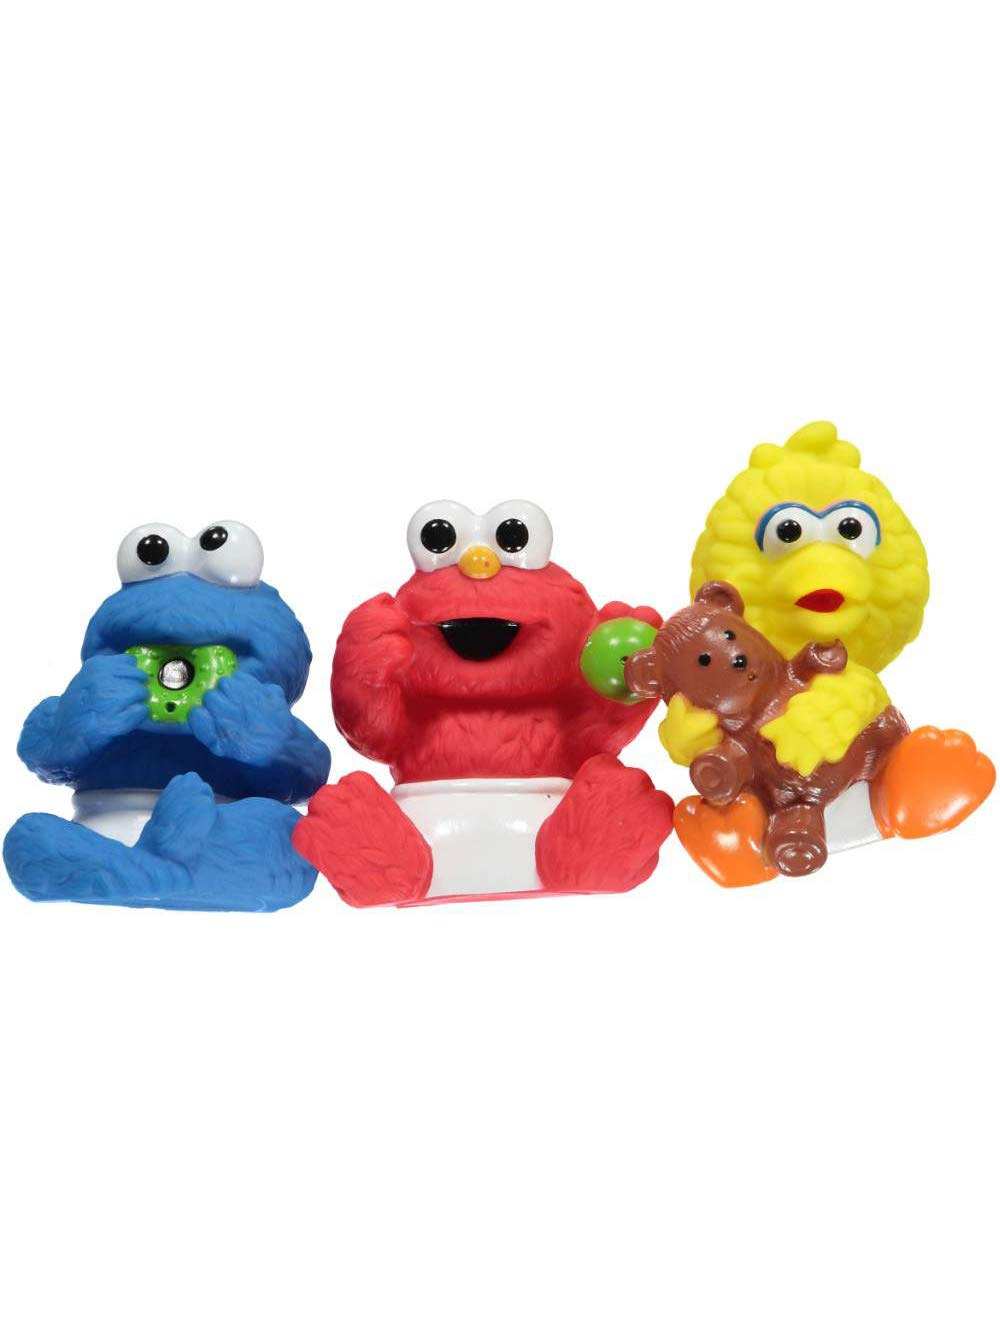 Sesame Street Friends Bath Tub Squirter 3-Pack with Cookie Monster, Elmo & Big Bird BKST9100